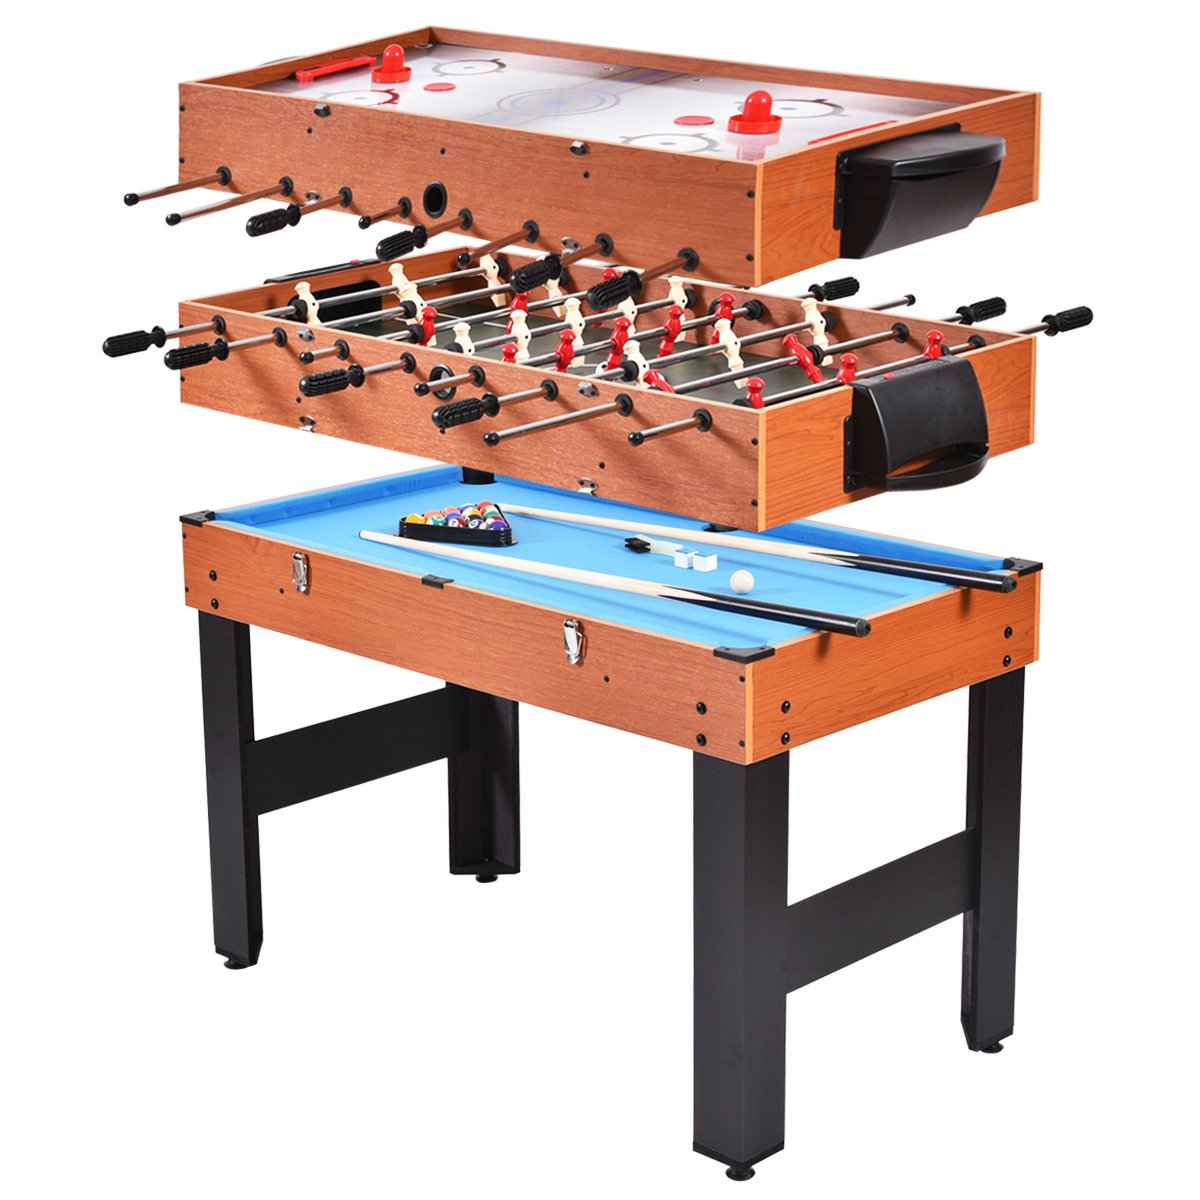 Giantex 48'' 3-in-1 Multi Game Table, with Soccer Table, Hockey Table, Billiards Table, Entertainment Combination Game Table for Home, Arcade, Game Rooms(Wood Color) by Giantex